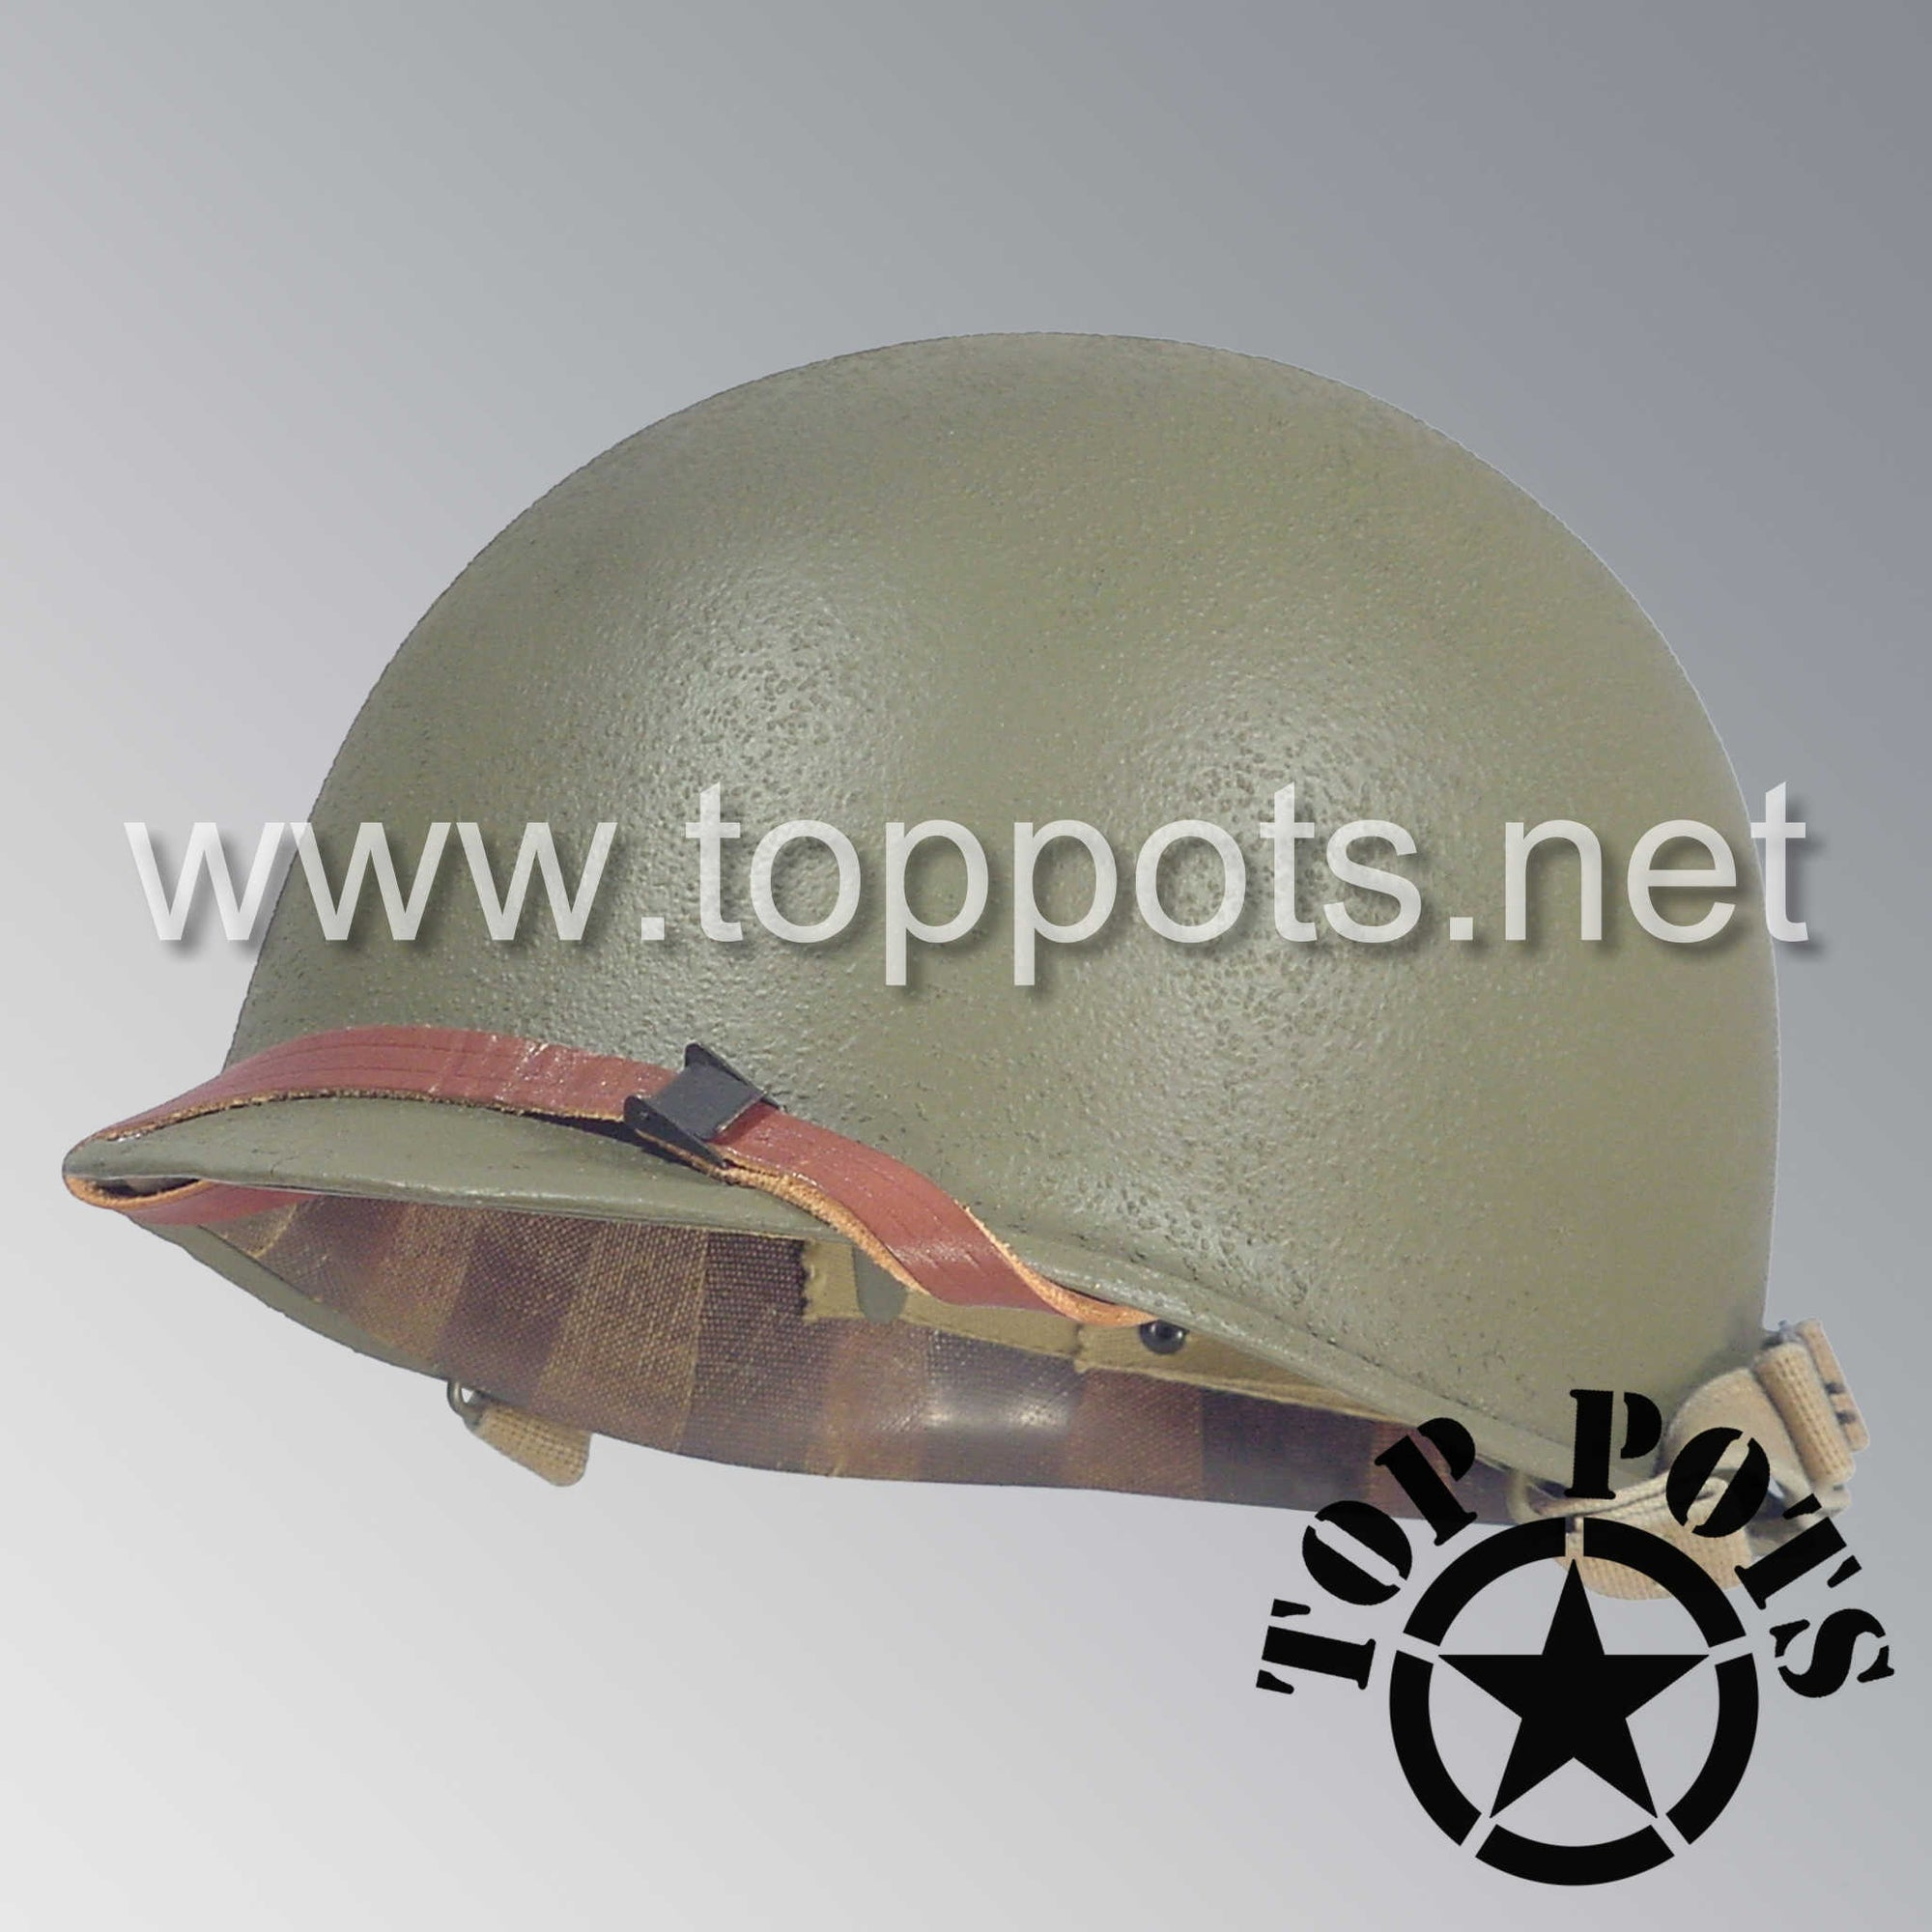 Image 1 of WWII US Army Restored Original M1 Infantry Helmet Swivel Bale Shell and Liner with 10th Armored Division Emblem